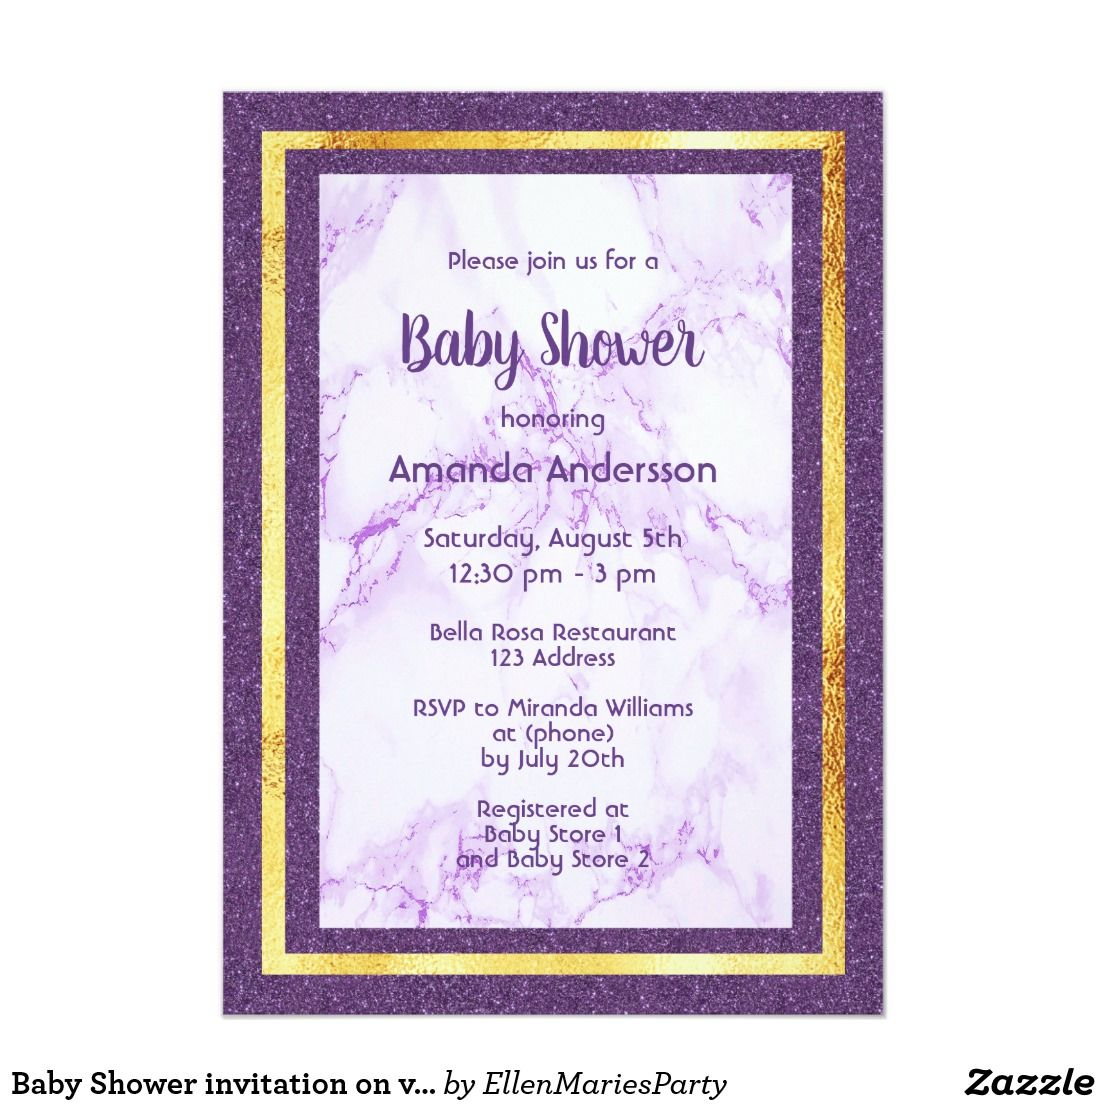 Baby Shower Invitation Letter Stunning Baby Shower Invitation On Violet Marble Glitter  Elegant .